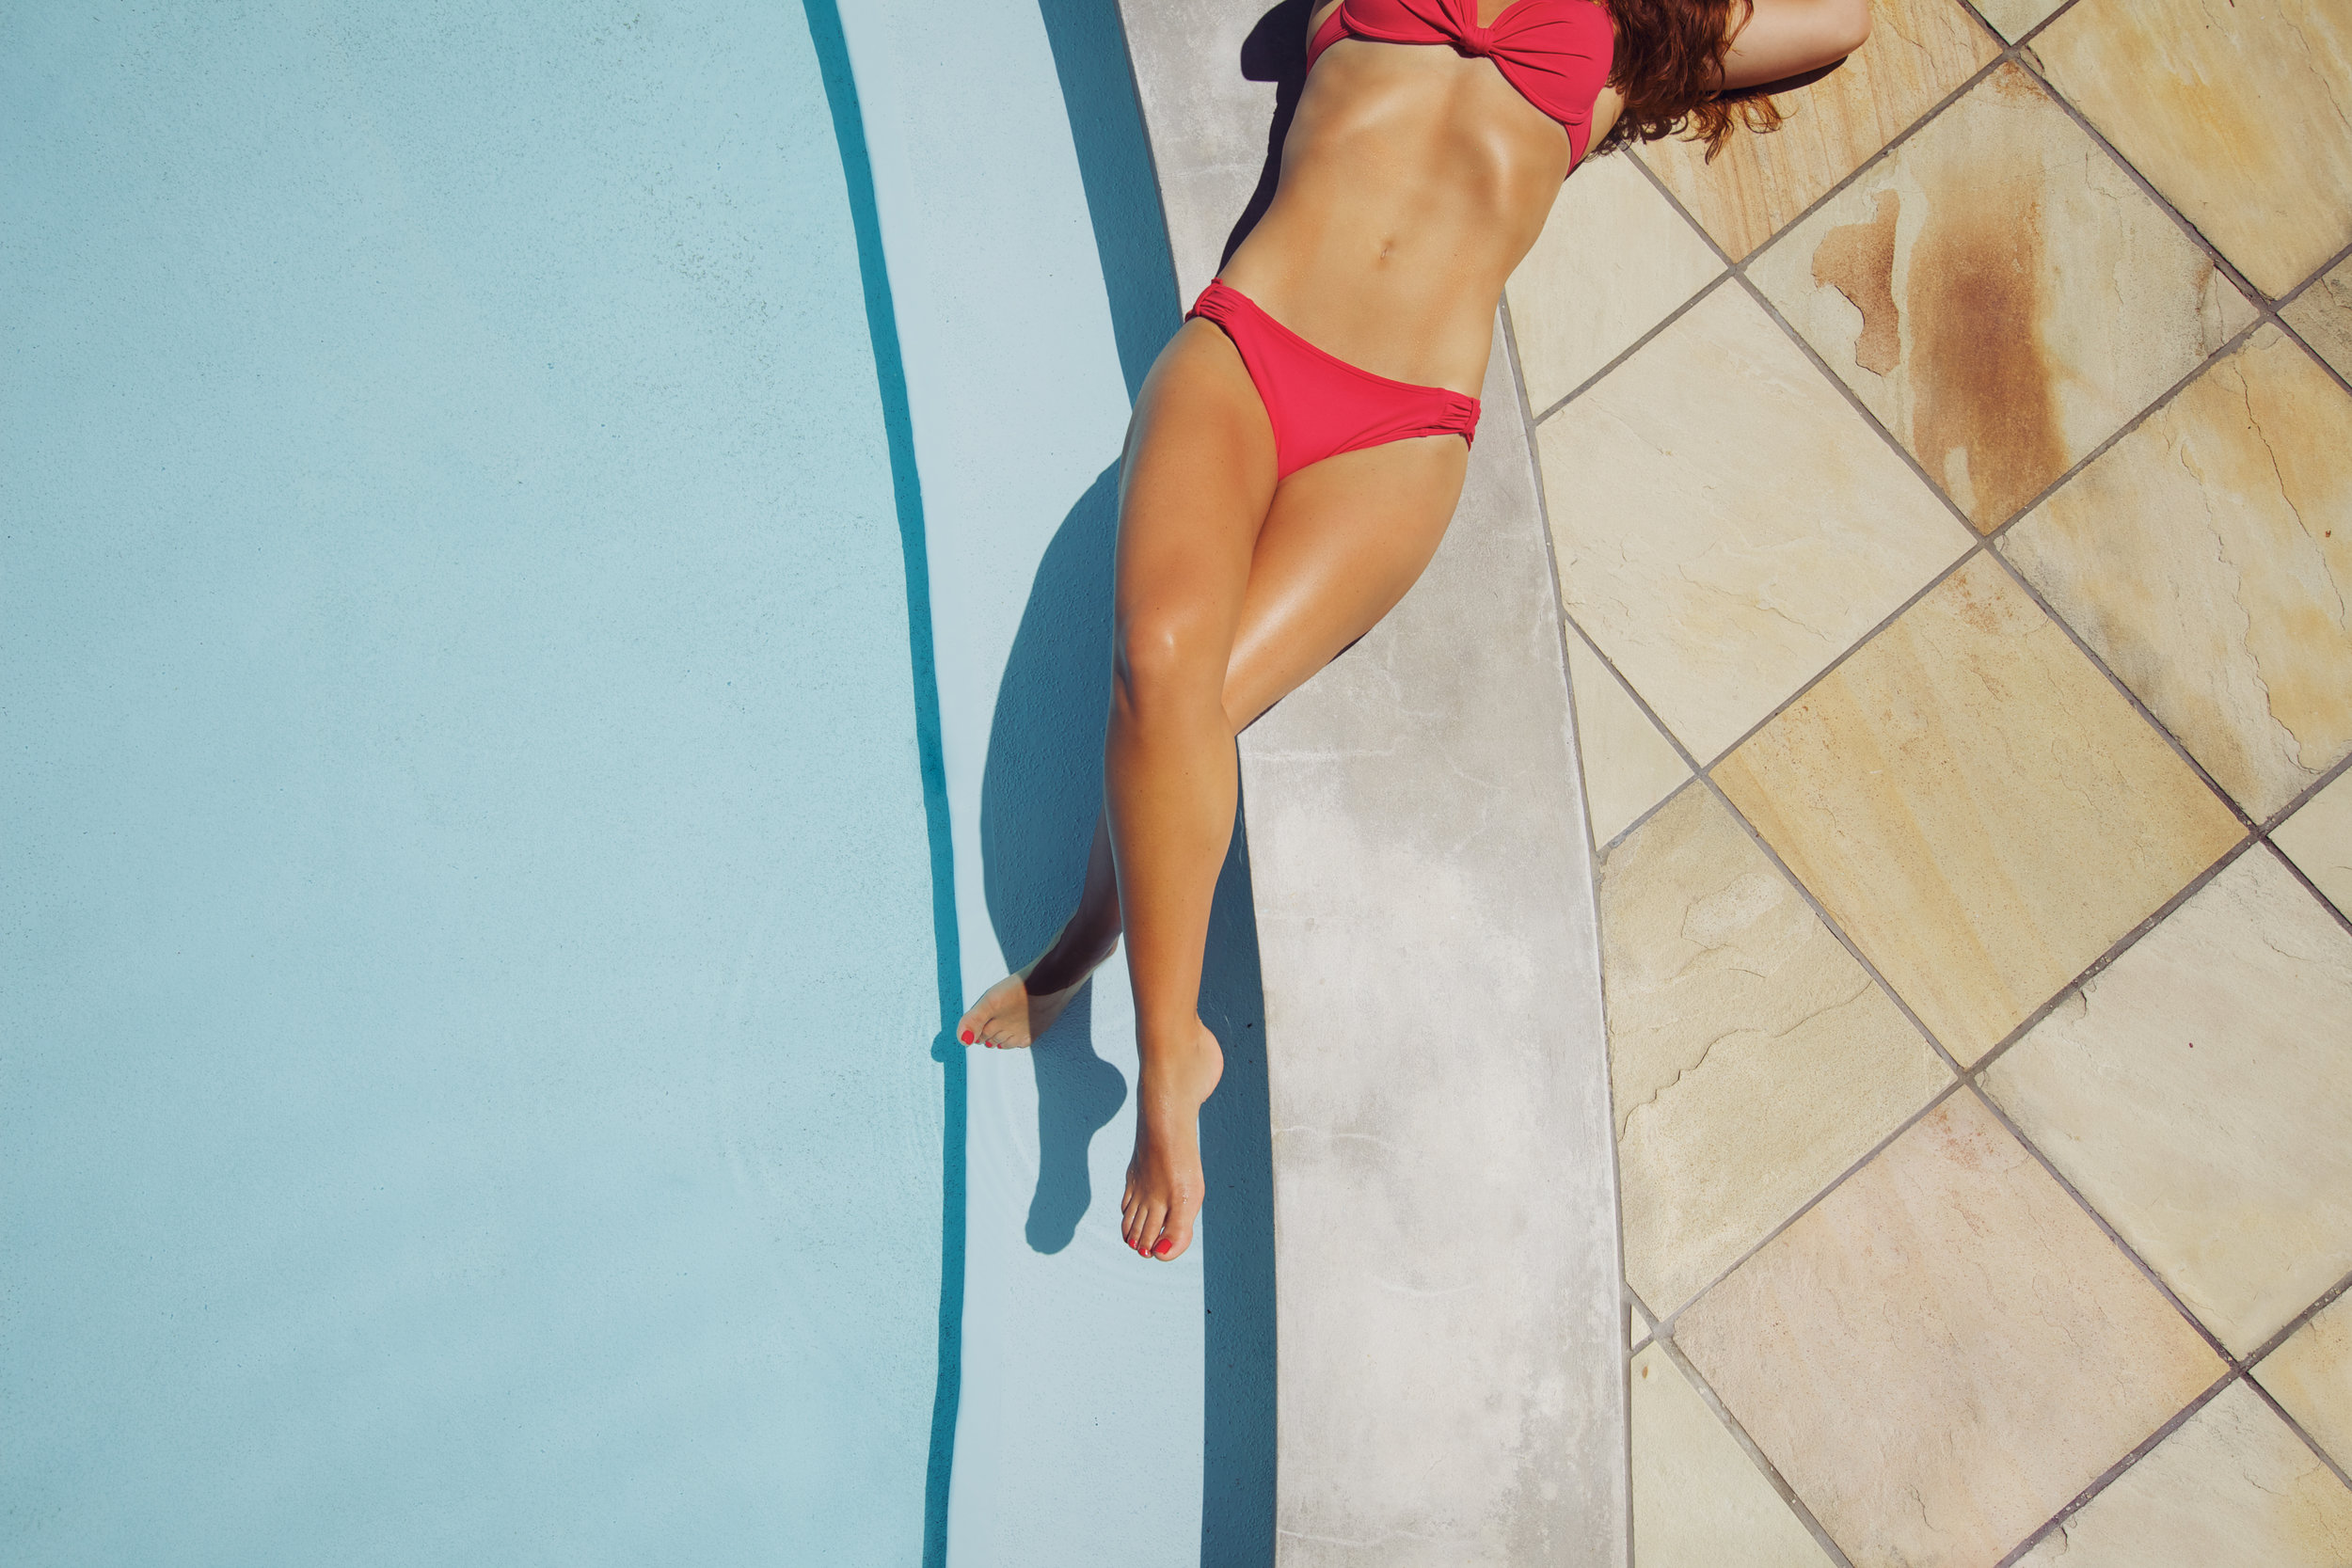 high-angle-view-of-an-attractive-woman-lying-at-the-edge-of-a-pool-in-a-bikini-with-her-legs-crossed-female-model-sunbathing-at-poolside_HpbYgSIVFx.jpg